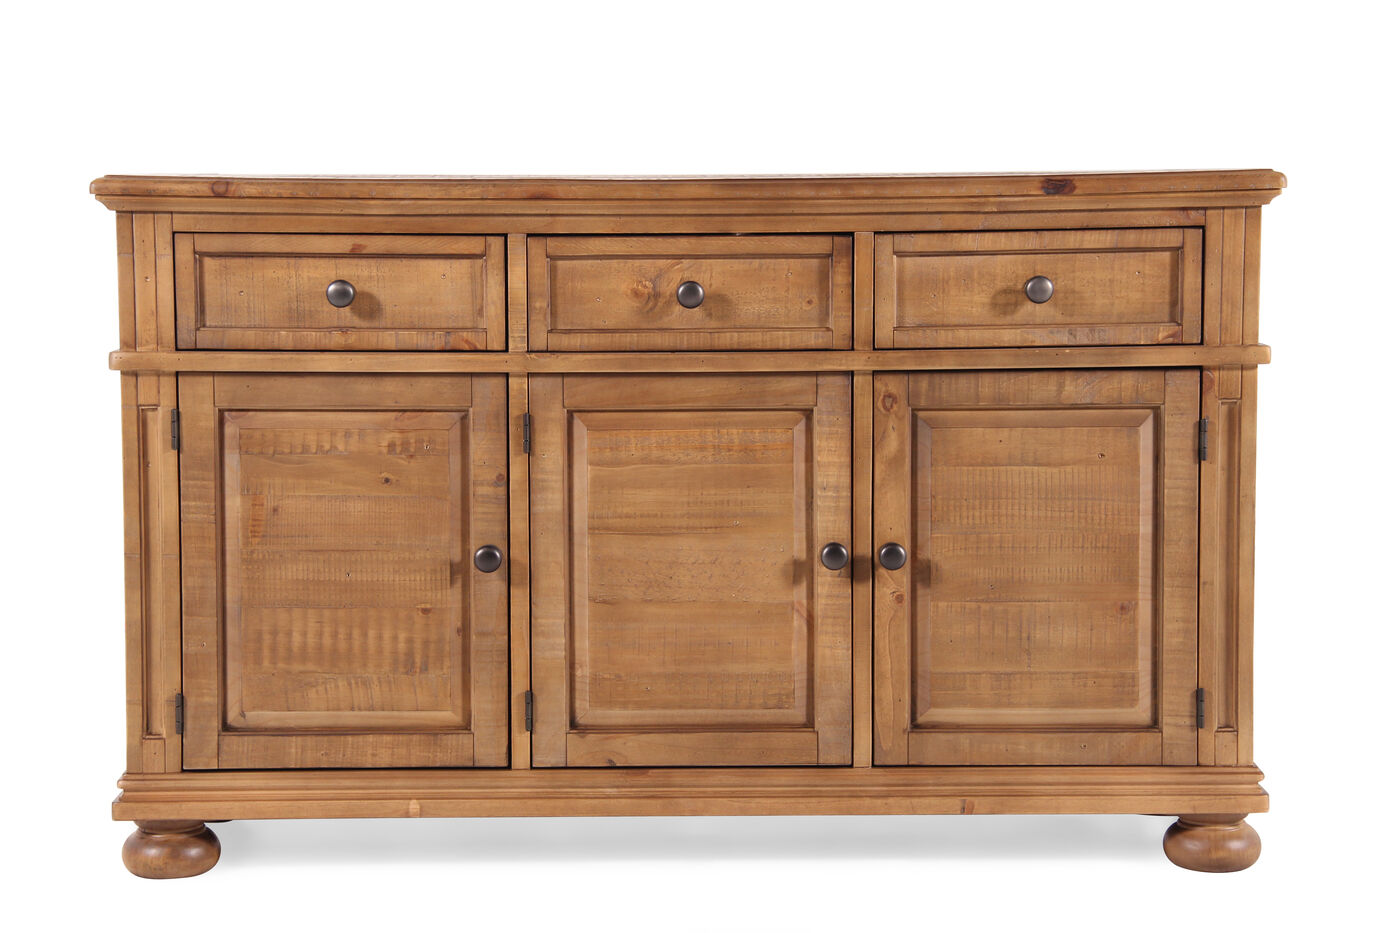 Ashley trishley dining room server mathis brothers furniture - Dining room server furniture ...